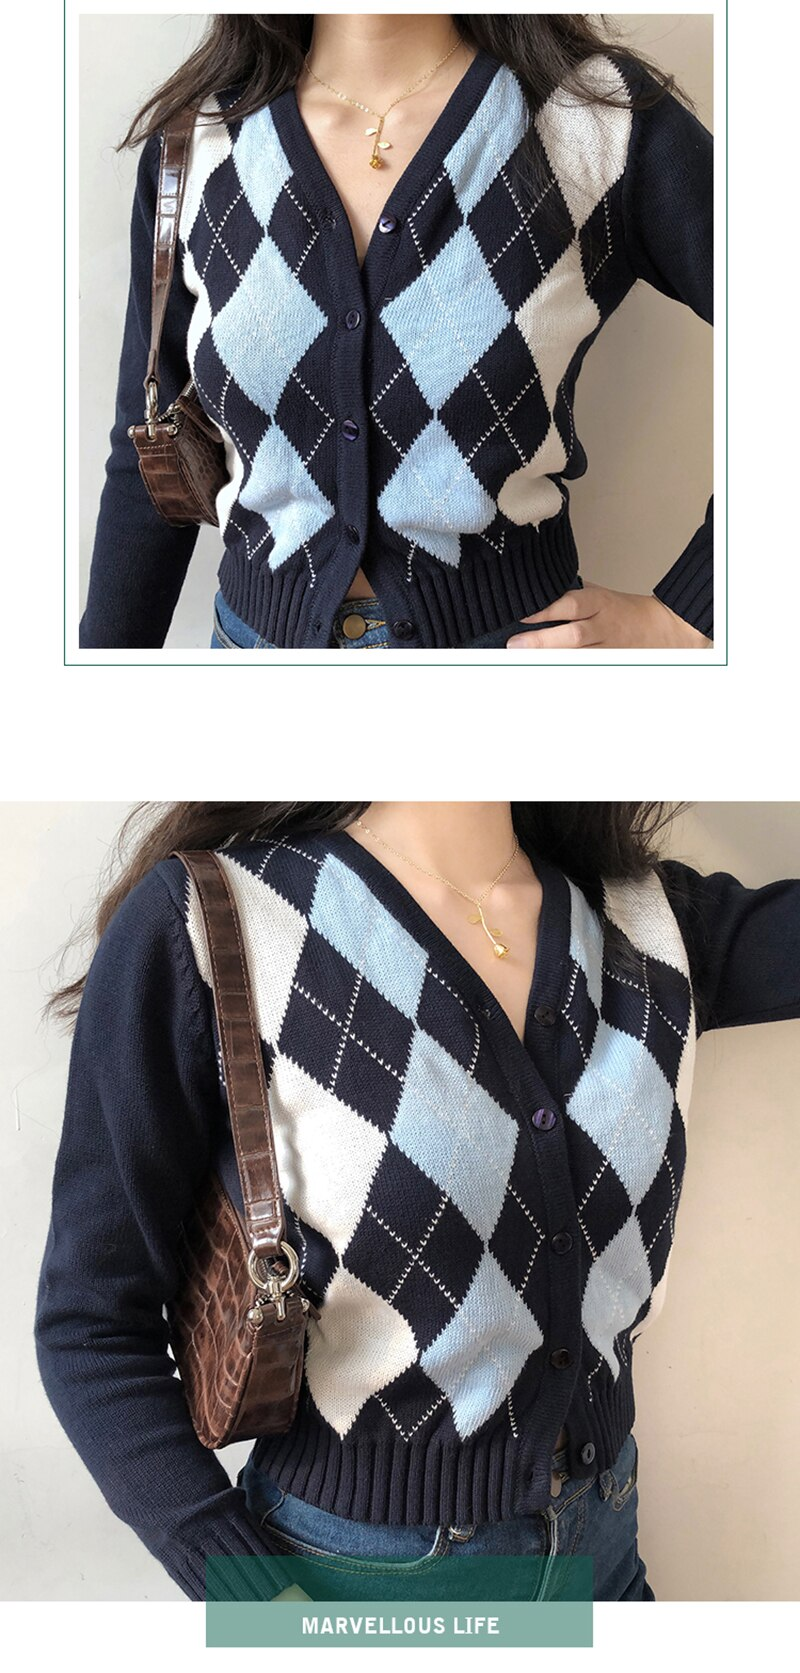 90s Plaid Knitted Cropped Cardigan